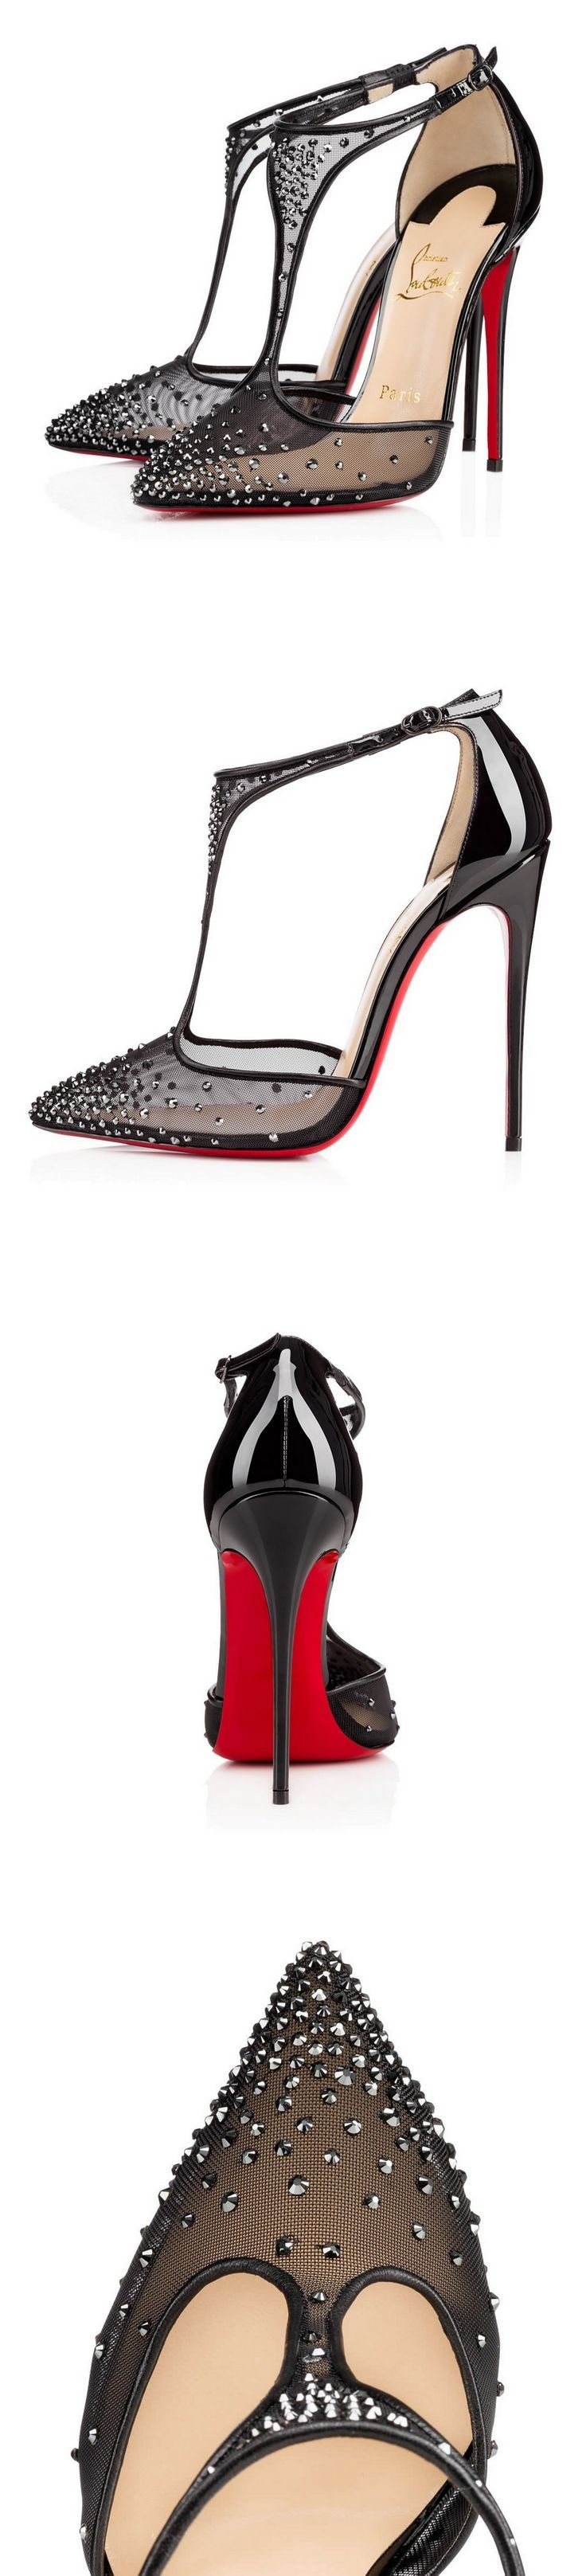 louboutin evening